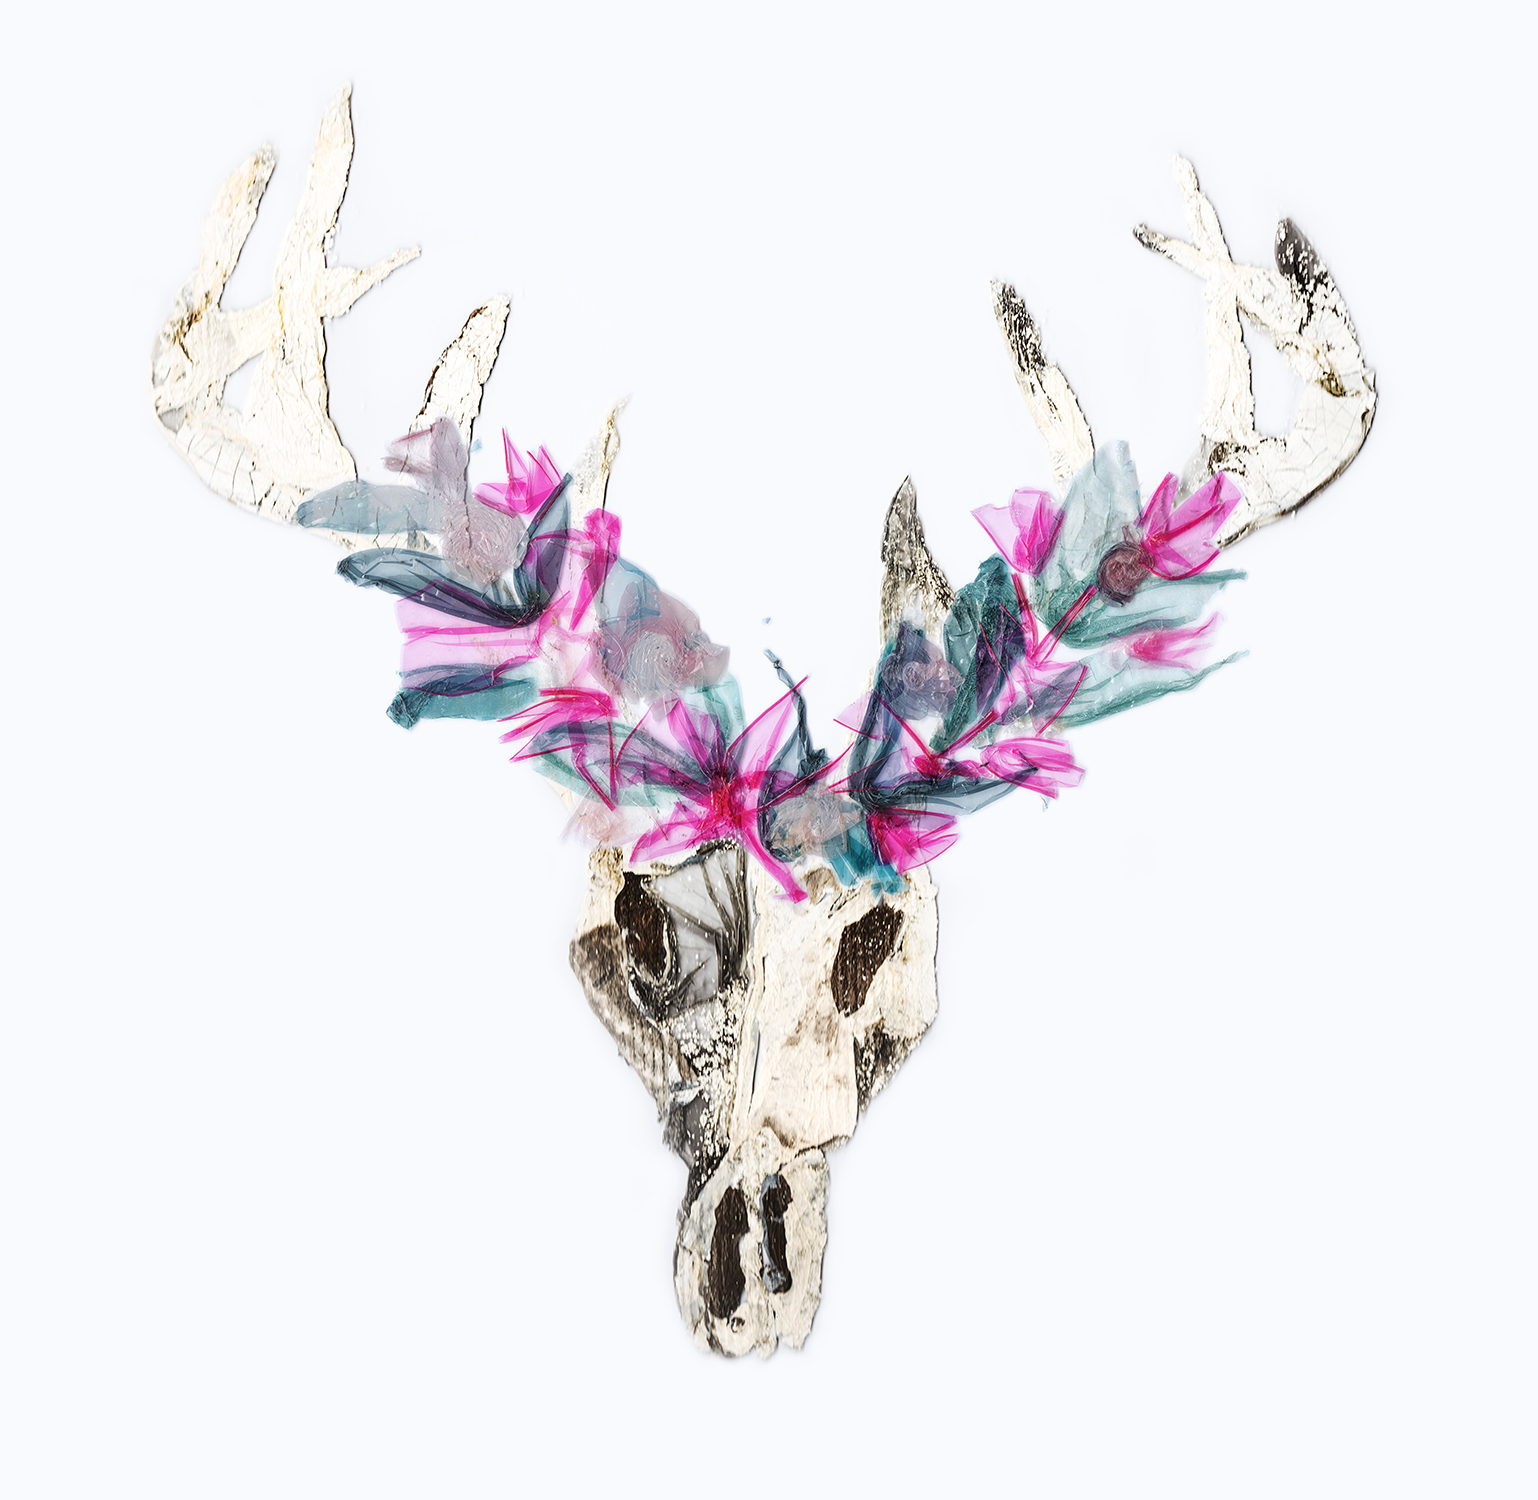 """""""Oh deer-instant Flaws"""" by Karin Claus"""